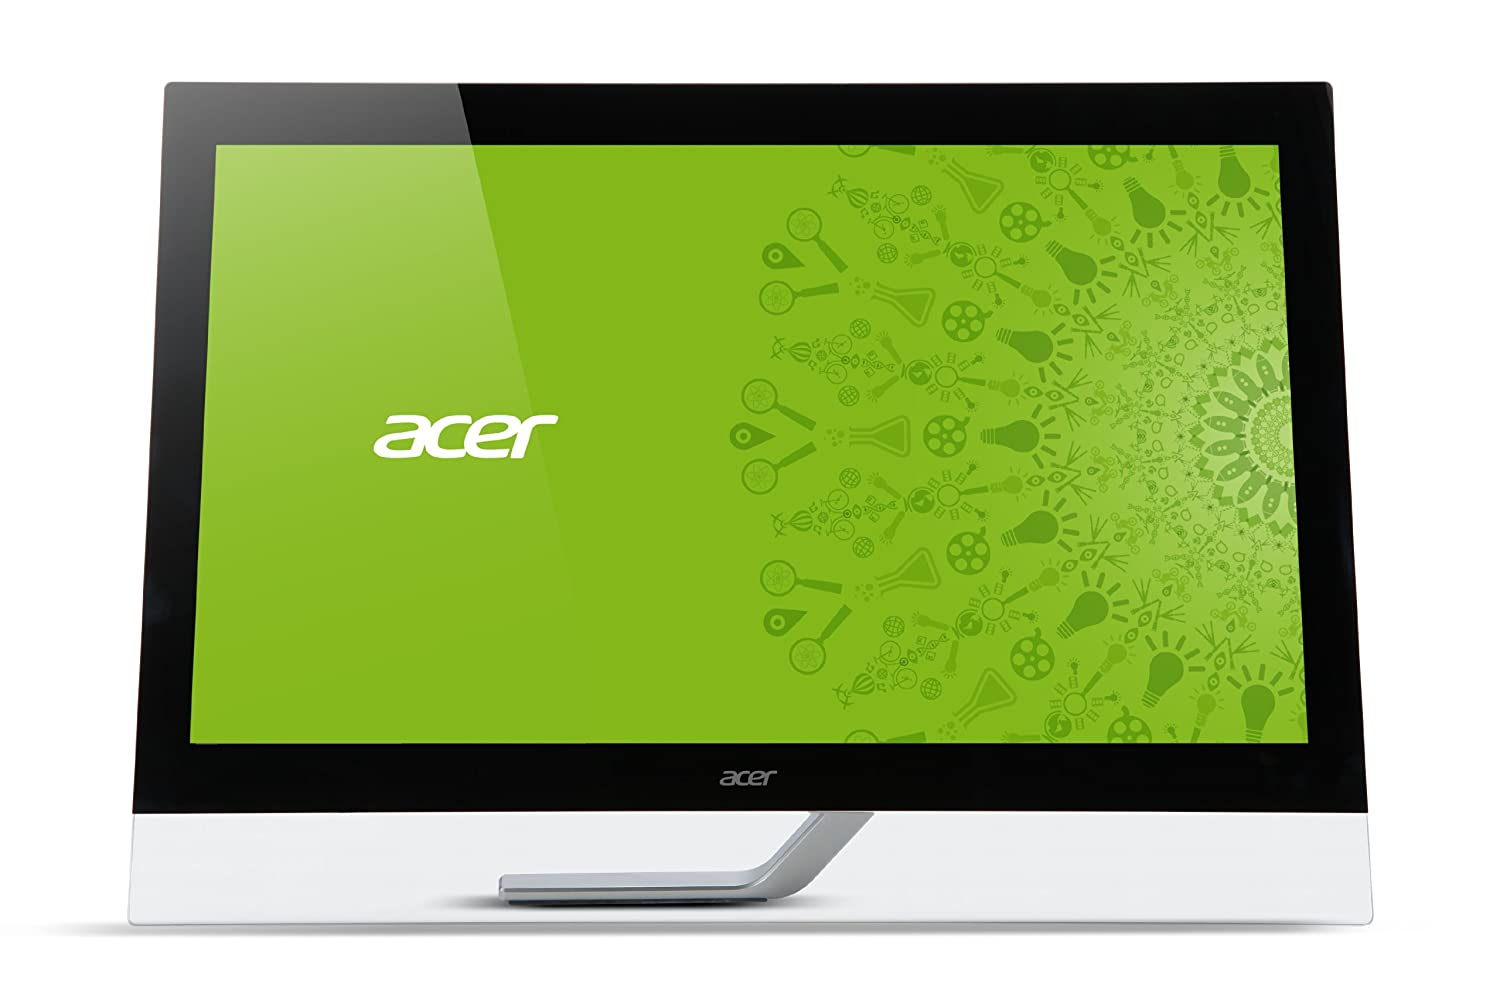 Acer T272HL bmjjz 27-Inch (1920 x 1080) Touch Screen Widescreen Monitor